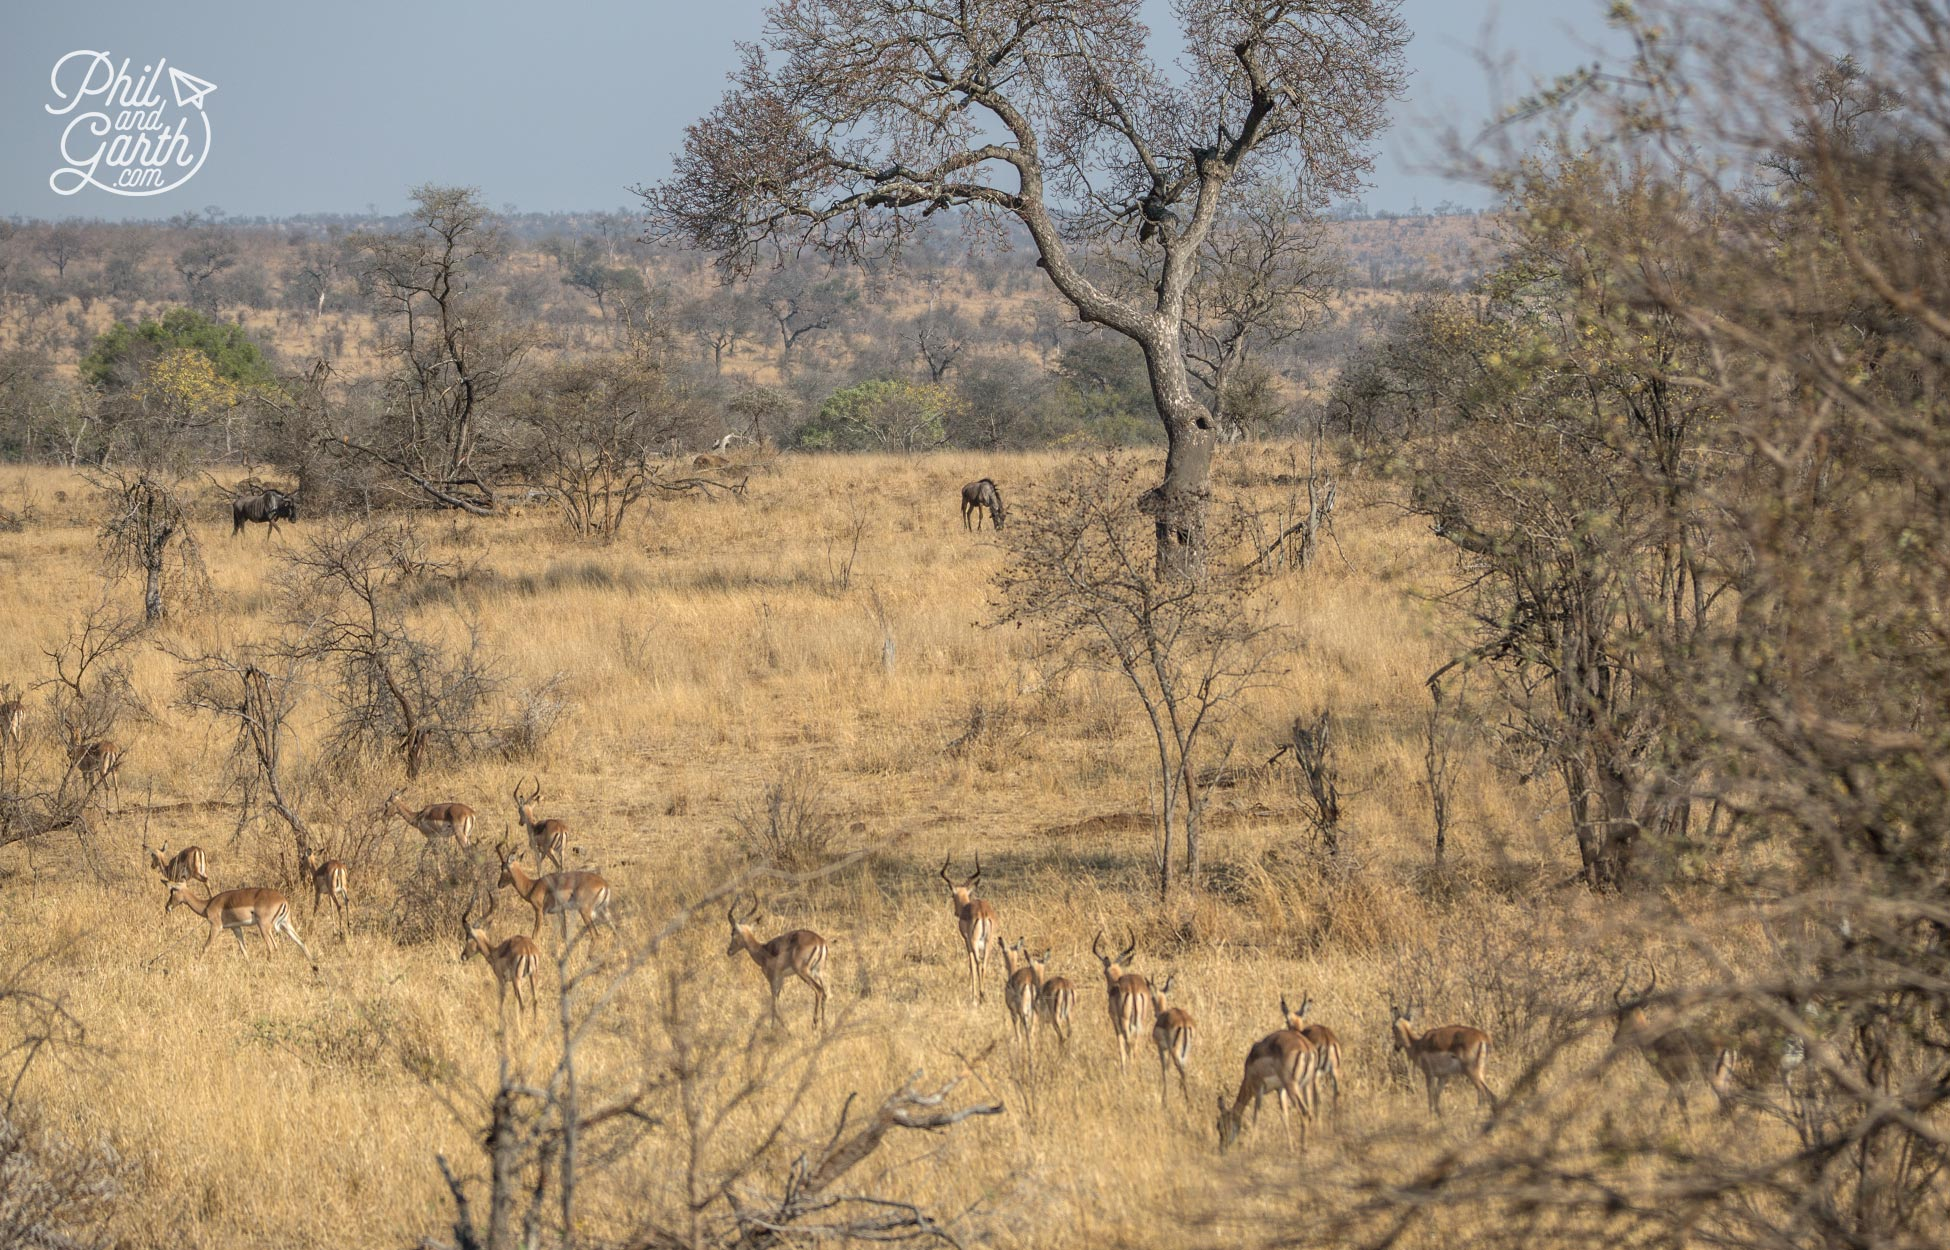 The vast wilderness of Kruger National Park